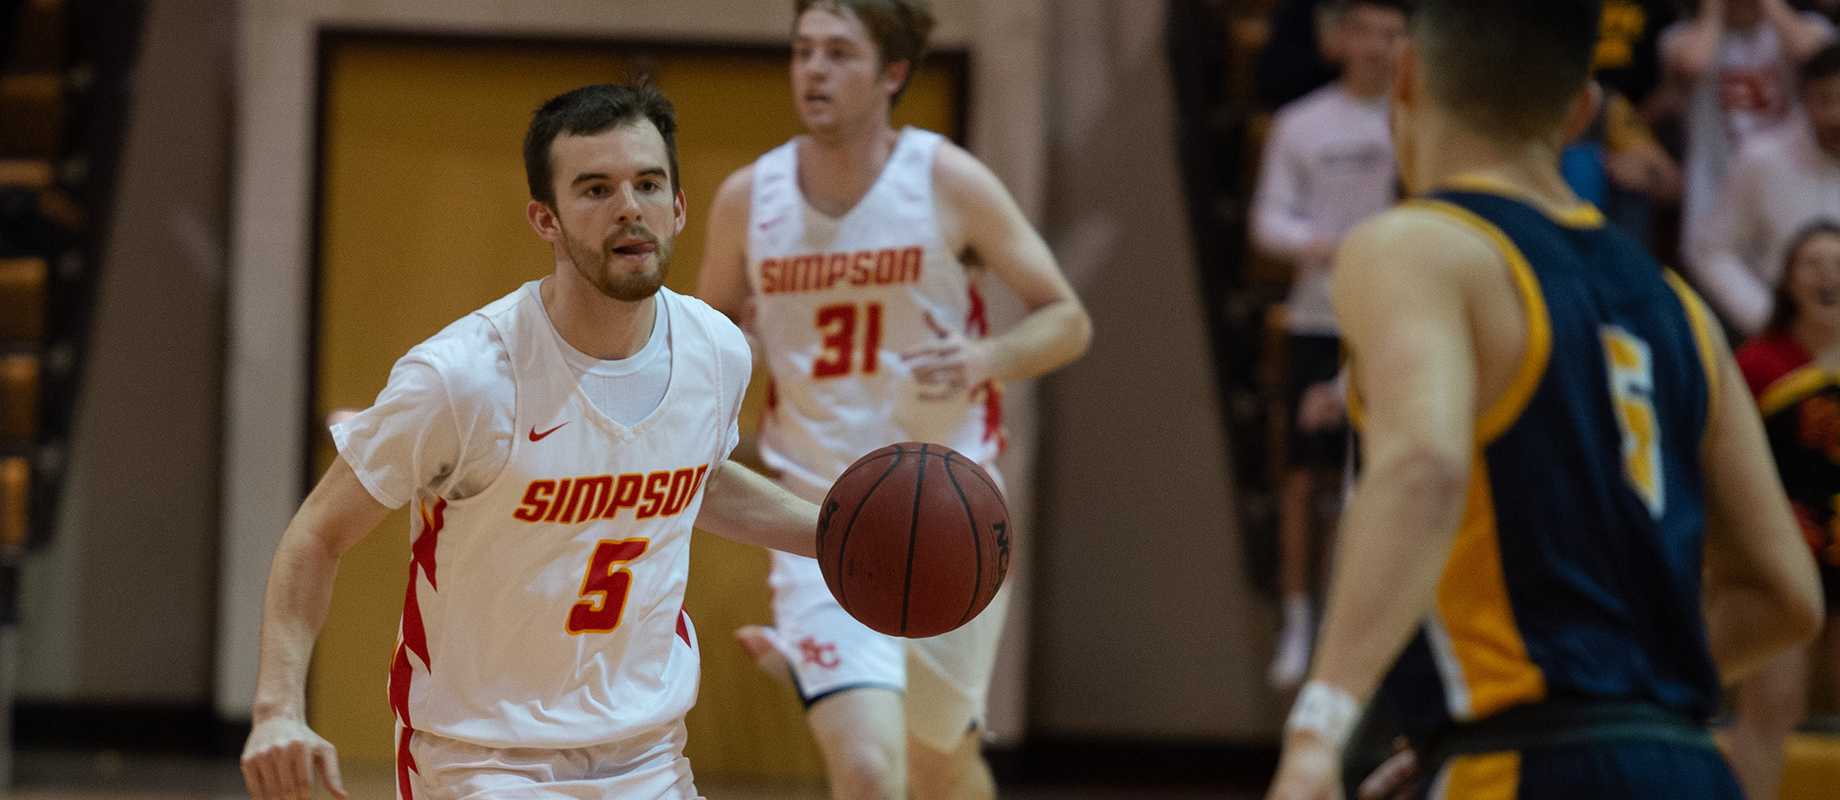 Nick Janssen as a member of the Simpson College basketball team.